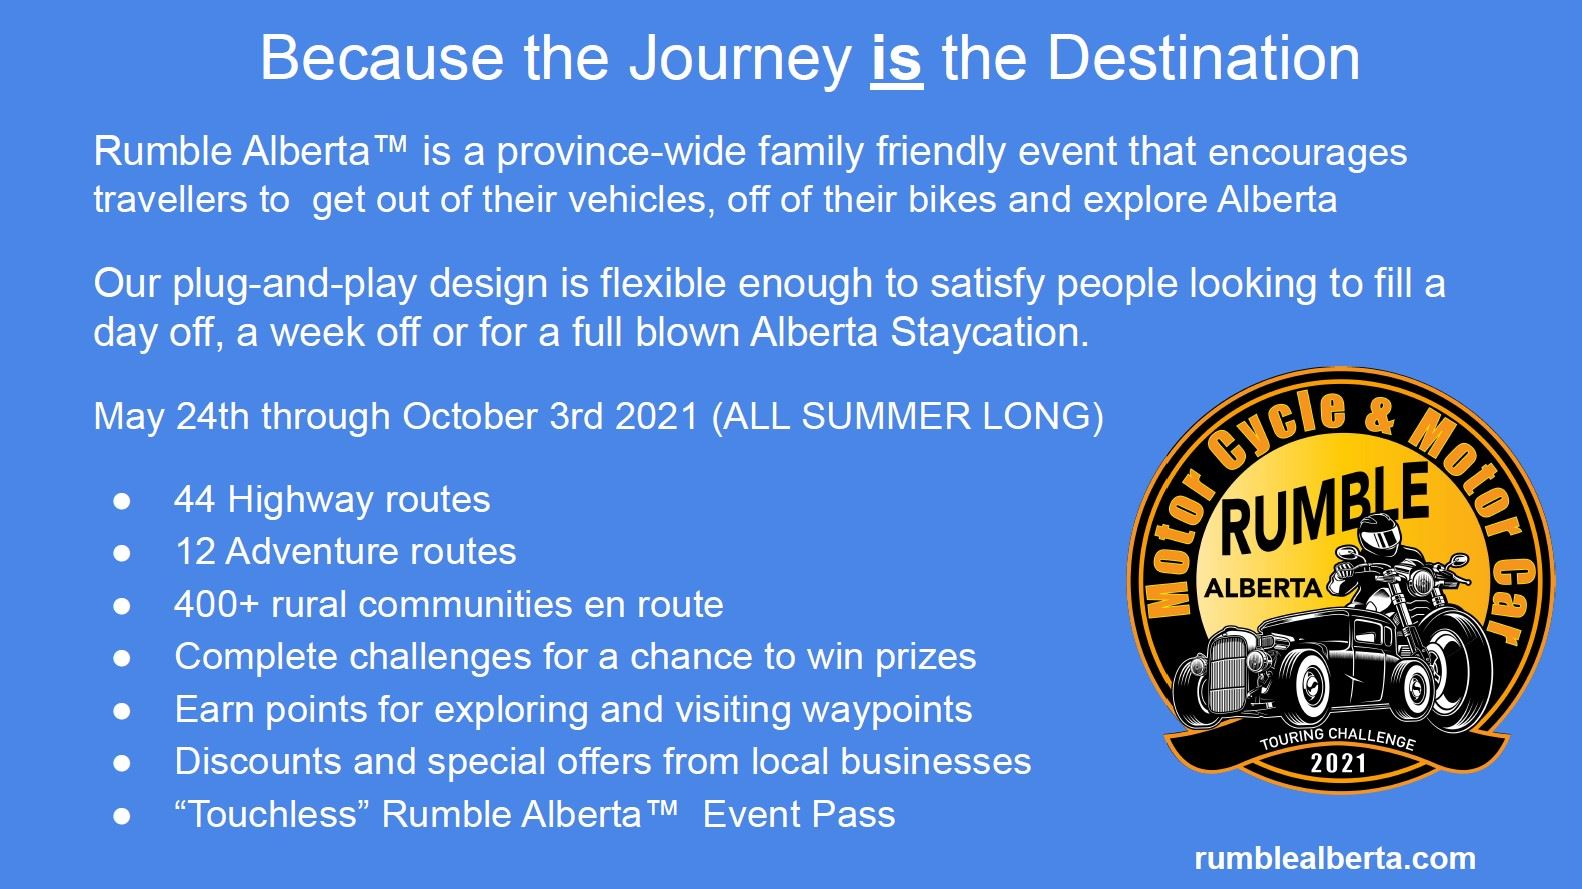 Rumble Alberta - Join the Journey